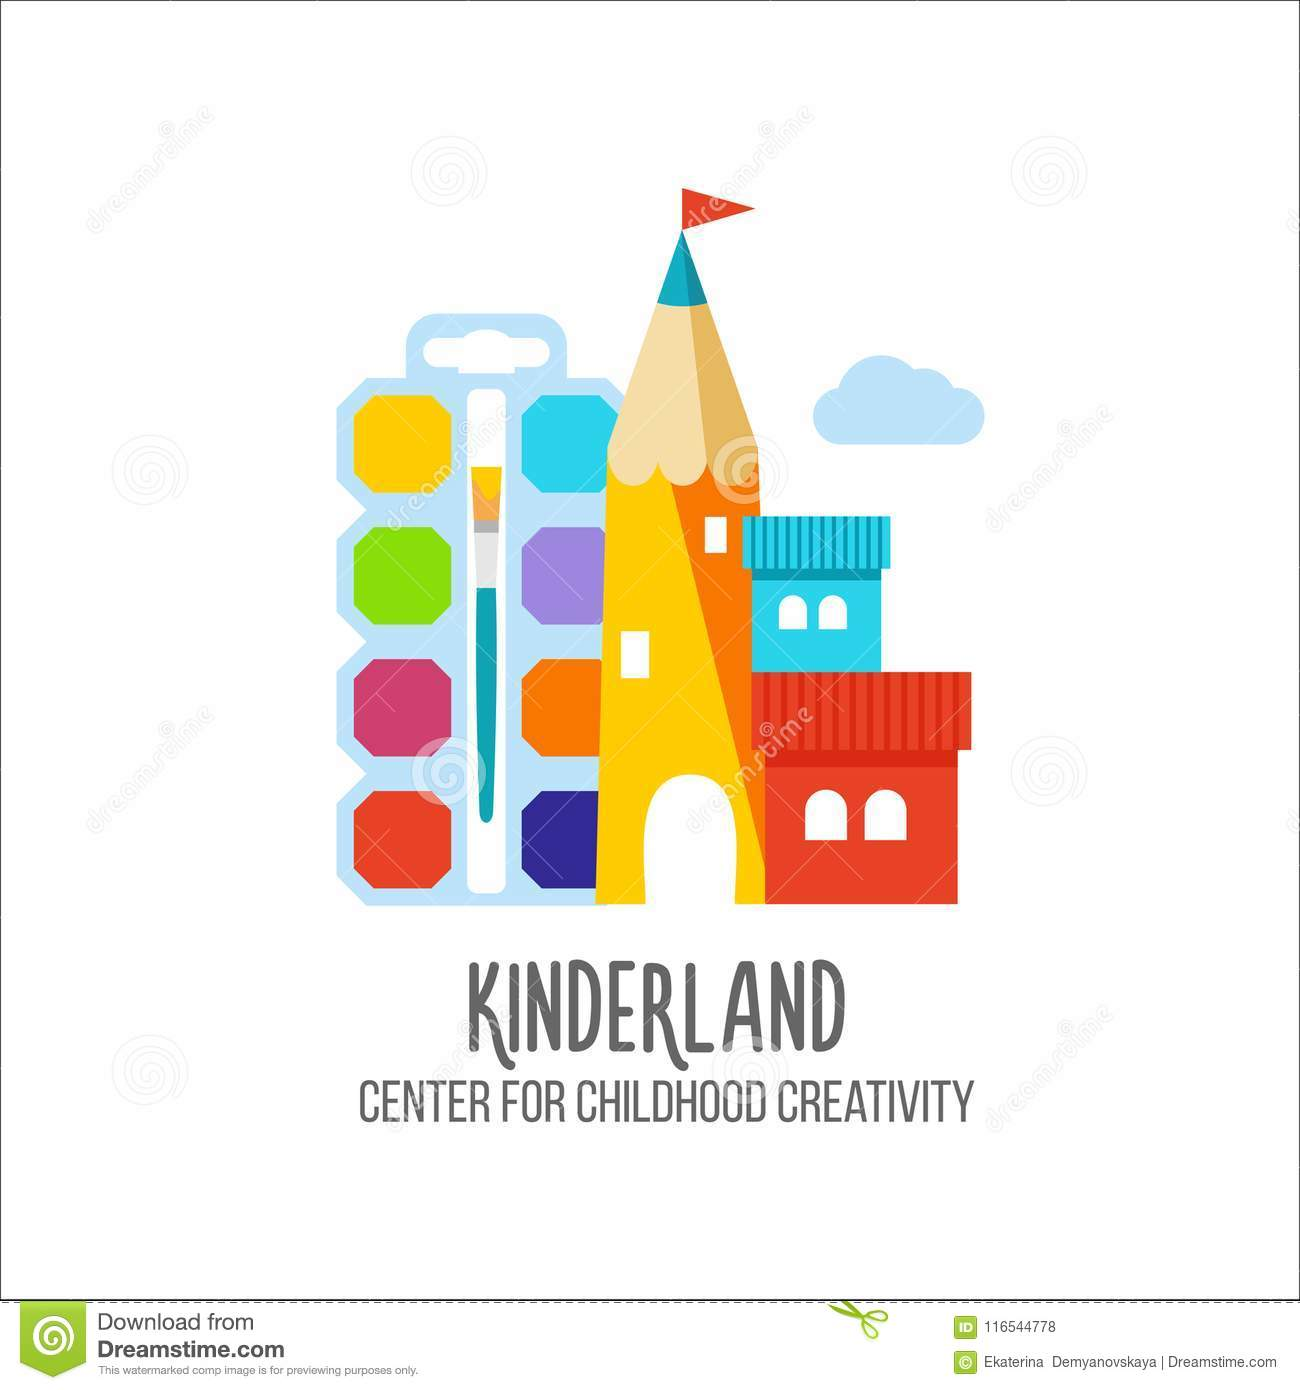 logo for kids club kinder garden education or child development emblem shop or store sign vector illustration - Kinder Garden